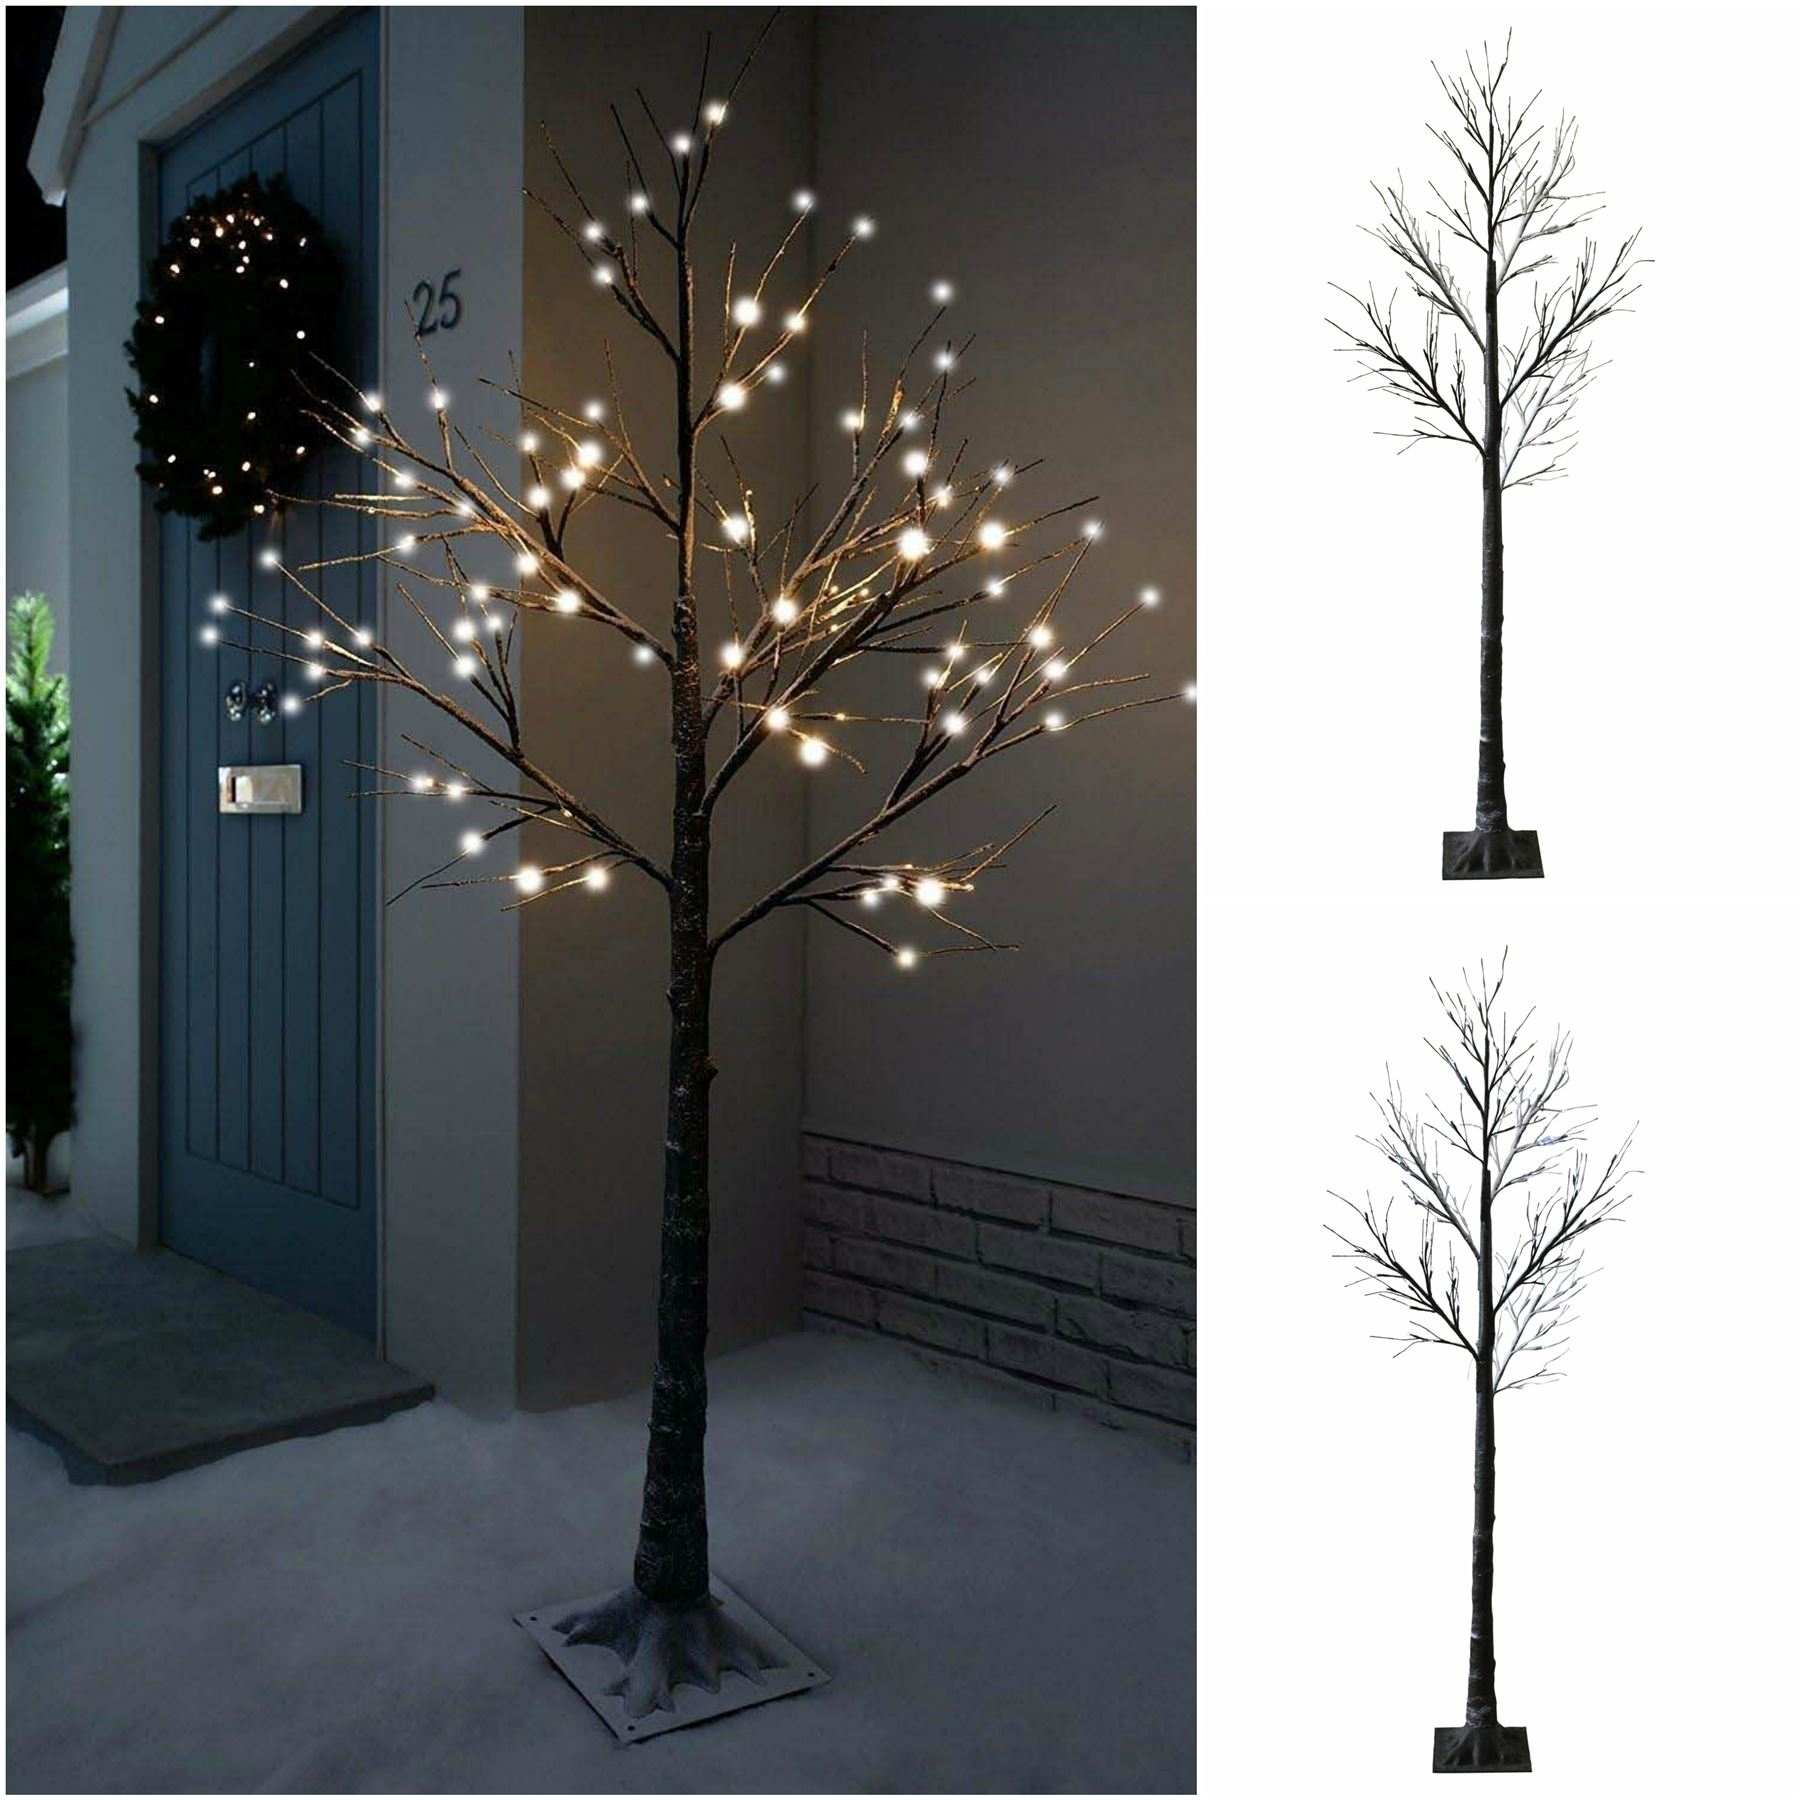 7ft snowy effect cool white twig tree pre lit 120 led xmas lights 7ft snowy effect cool white twig tree pre lit 120 led xmas lights indoor outdoor aloadofball Gallery